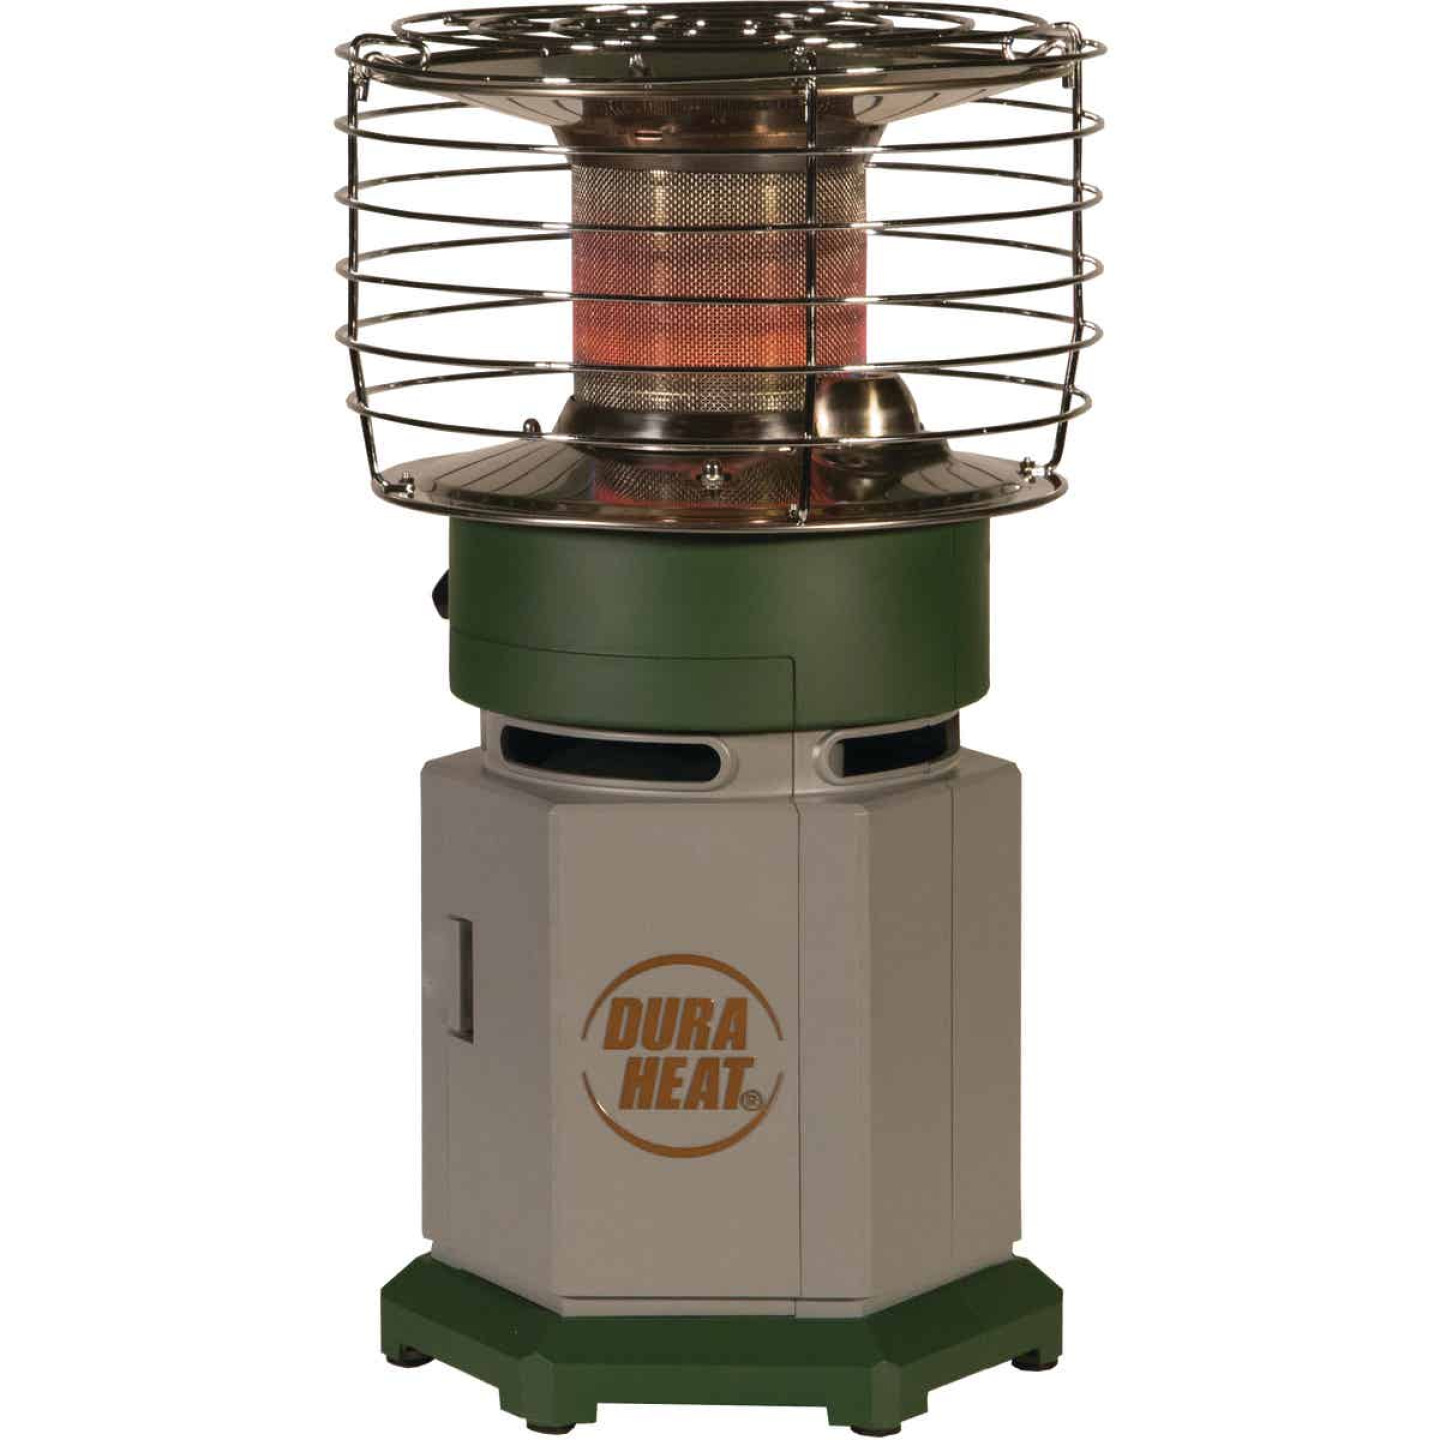 Dura Heat 10,000 BTU Radiant Single Tank 360 Degree Propane Heater Image 1